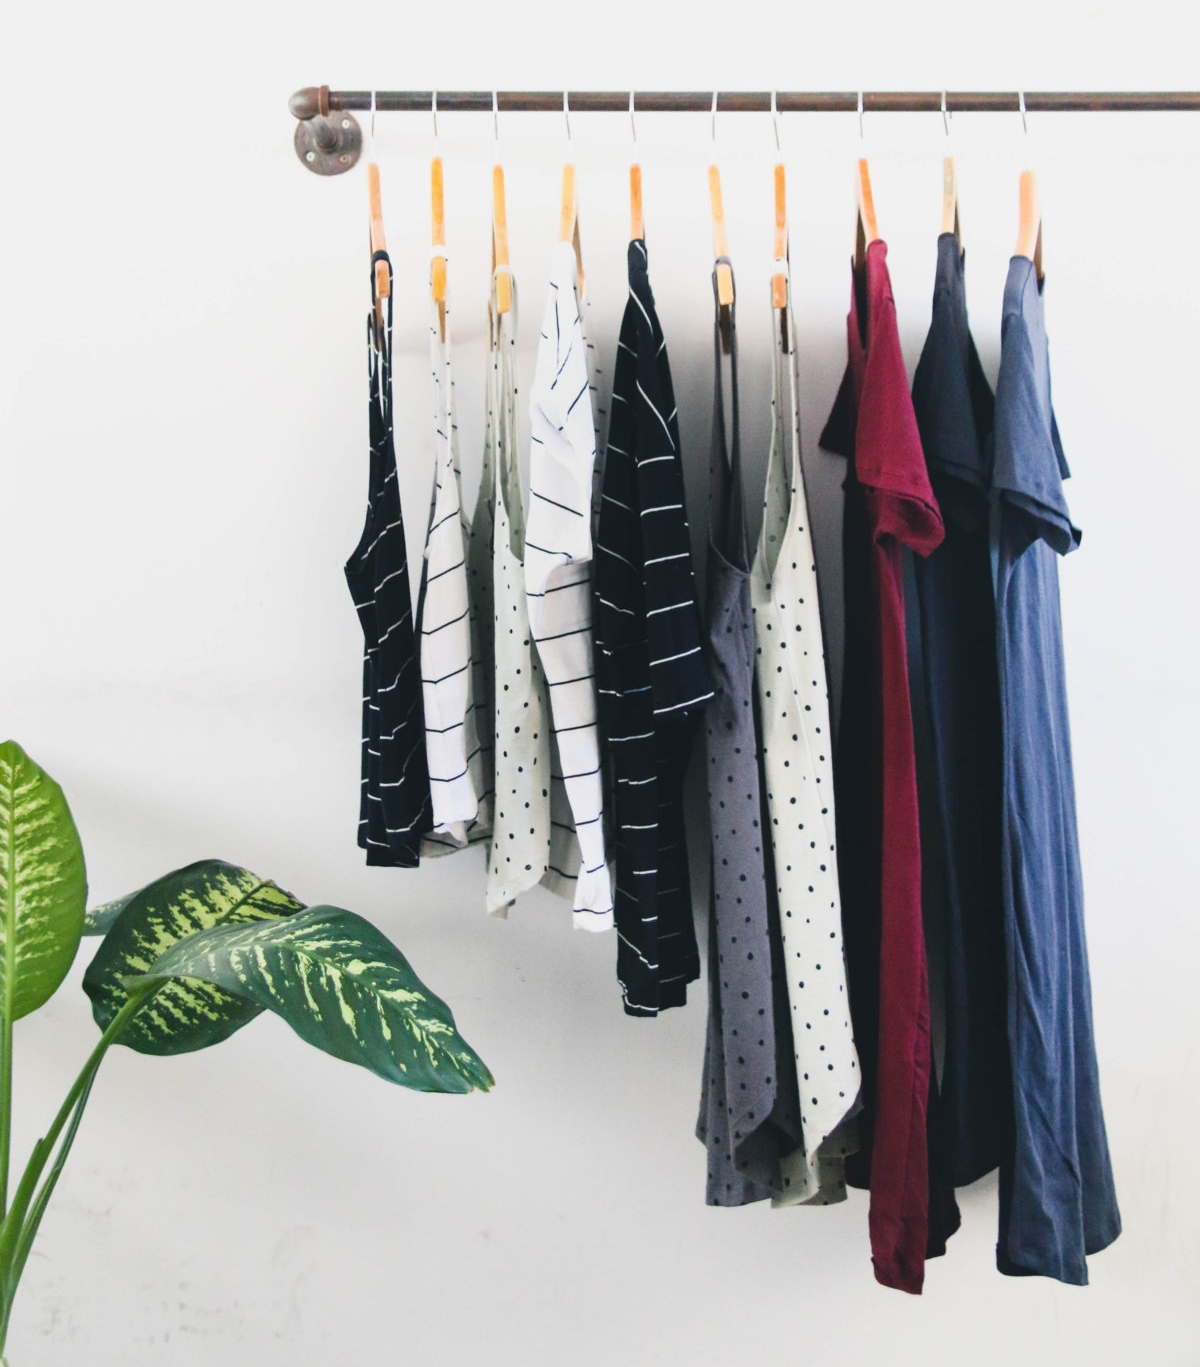 Krochet Kids launched a line or organic clothes in early 2017. it simply made us even bigger fans! Organic clothes are ultimately better for you, the workers, and the environement.